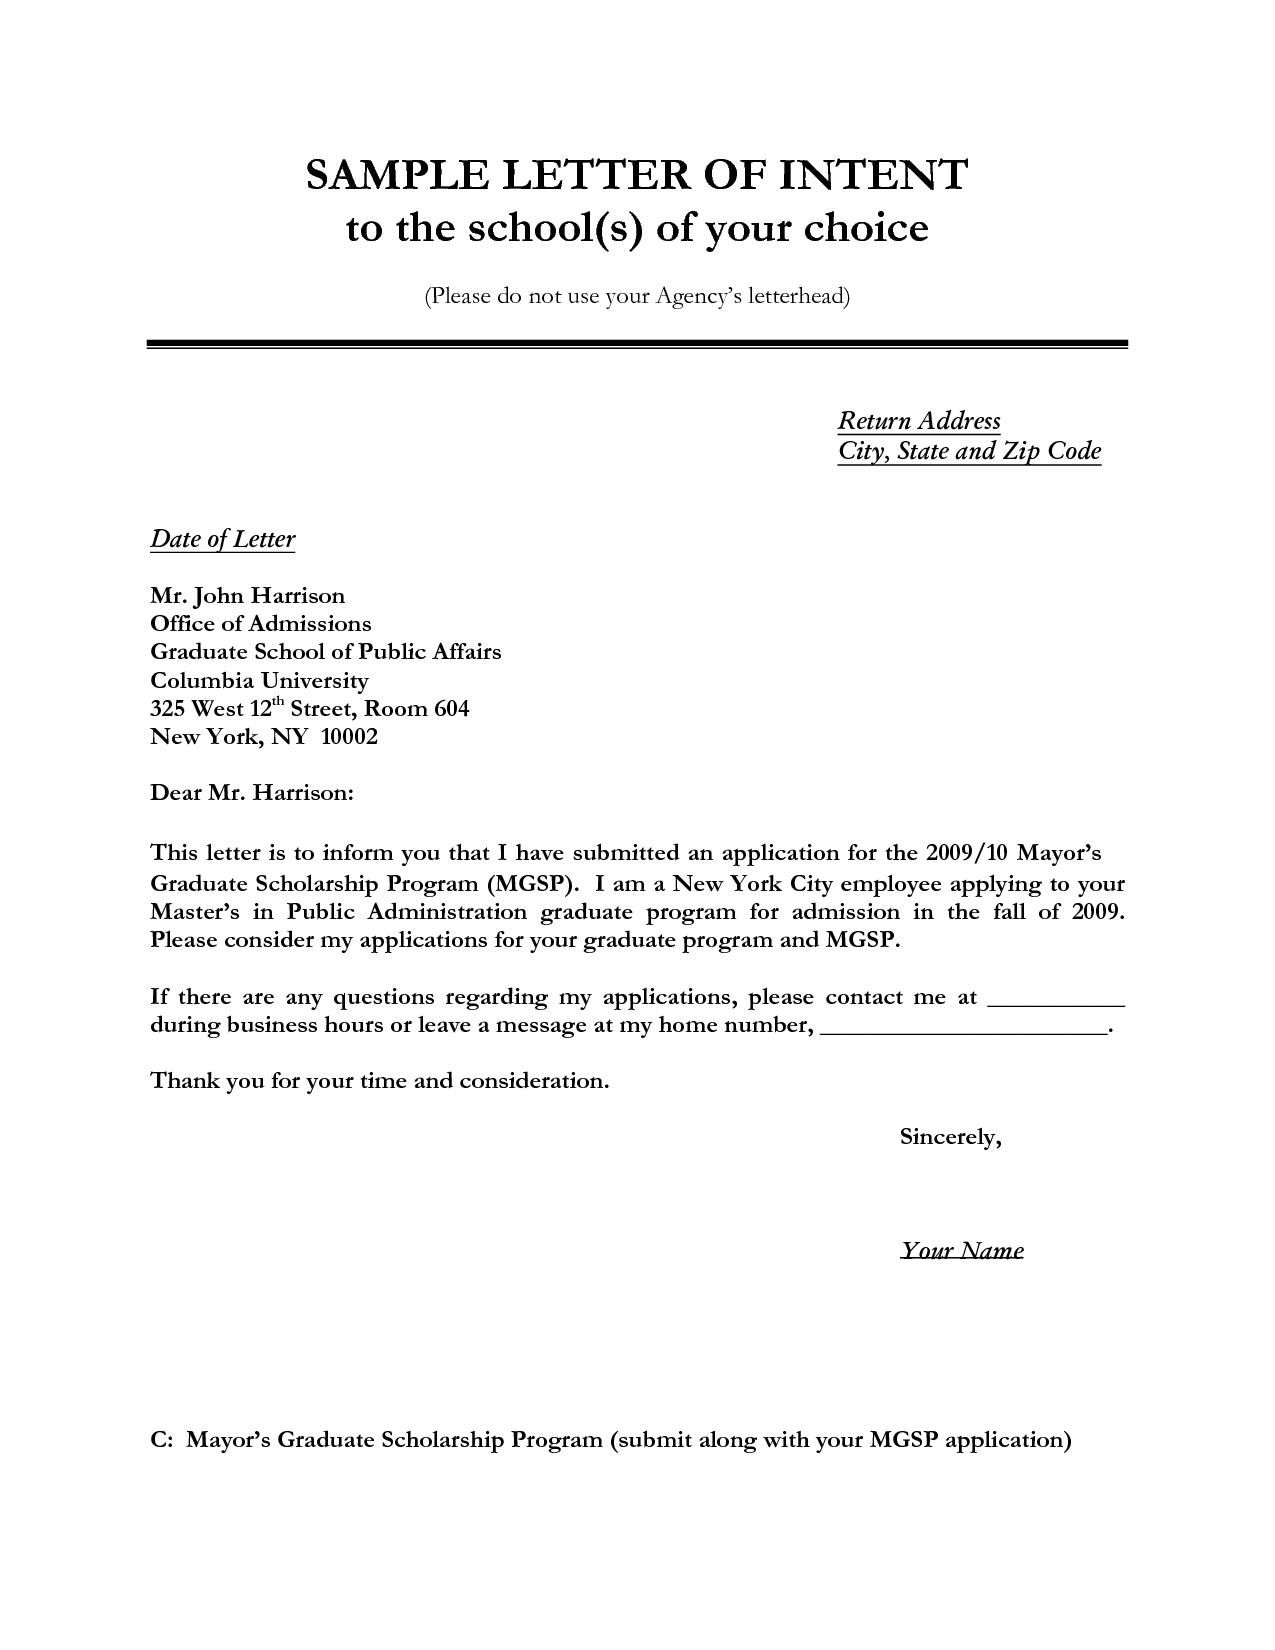 letter of intent template example-Letter of intent sample 7-m